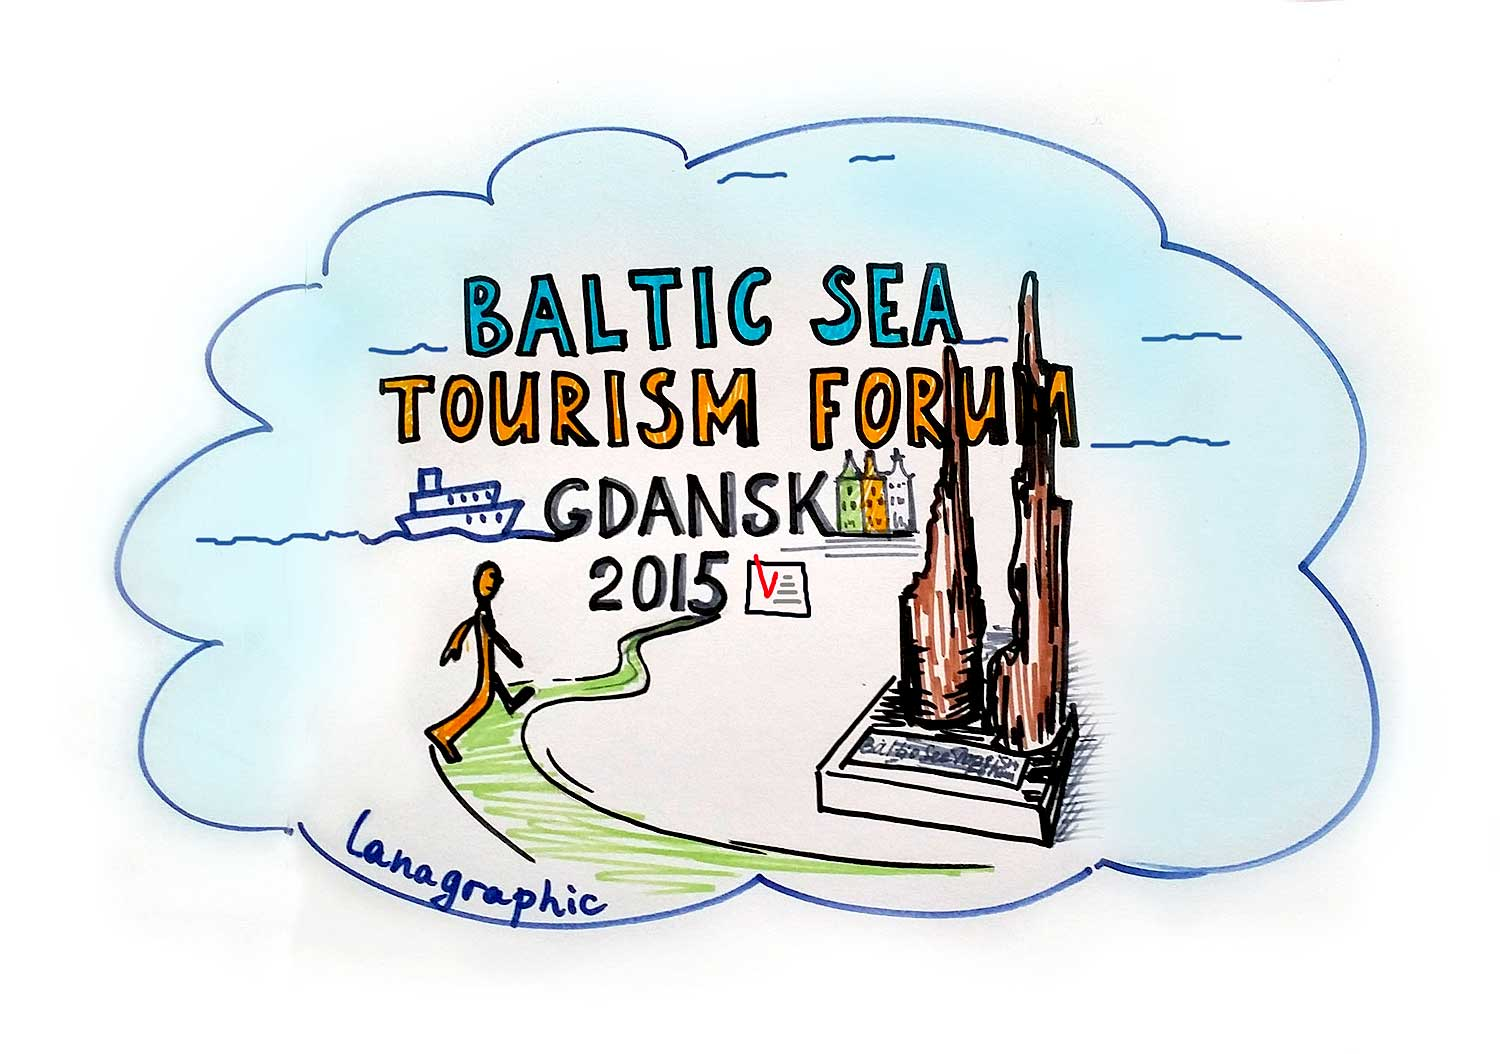 tourism-forum-in-Gdansk-by-Lanagraphic